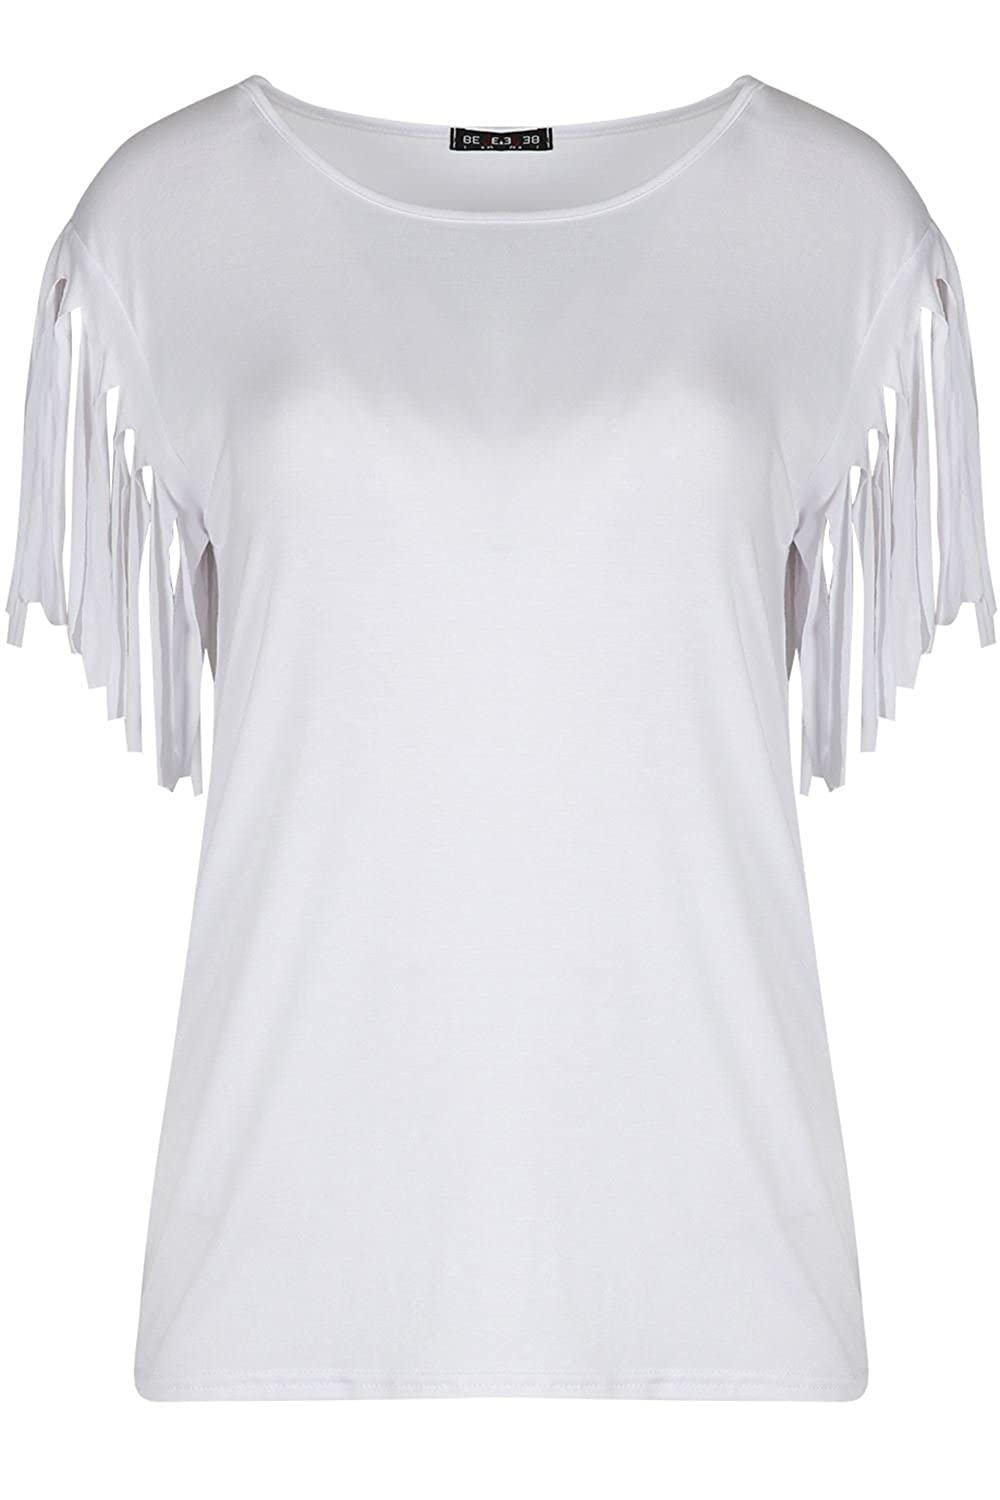 Be Jealous Womens Ladies Fringe Summer Loose Short Sleeve Blouse Casual Fashion Top Tee T Shirt